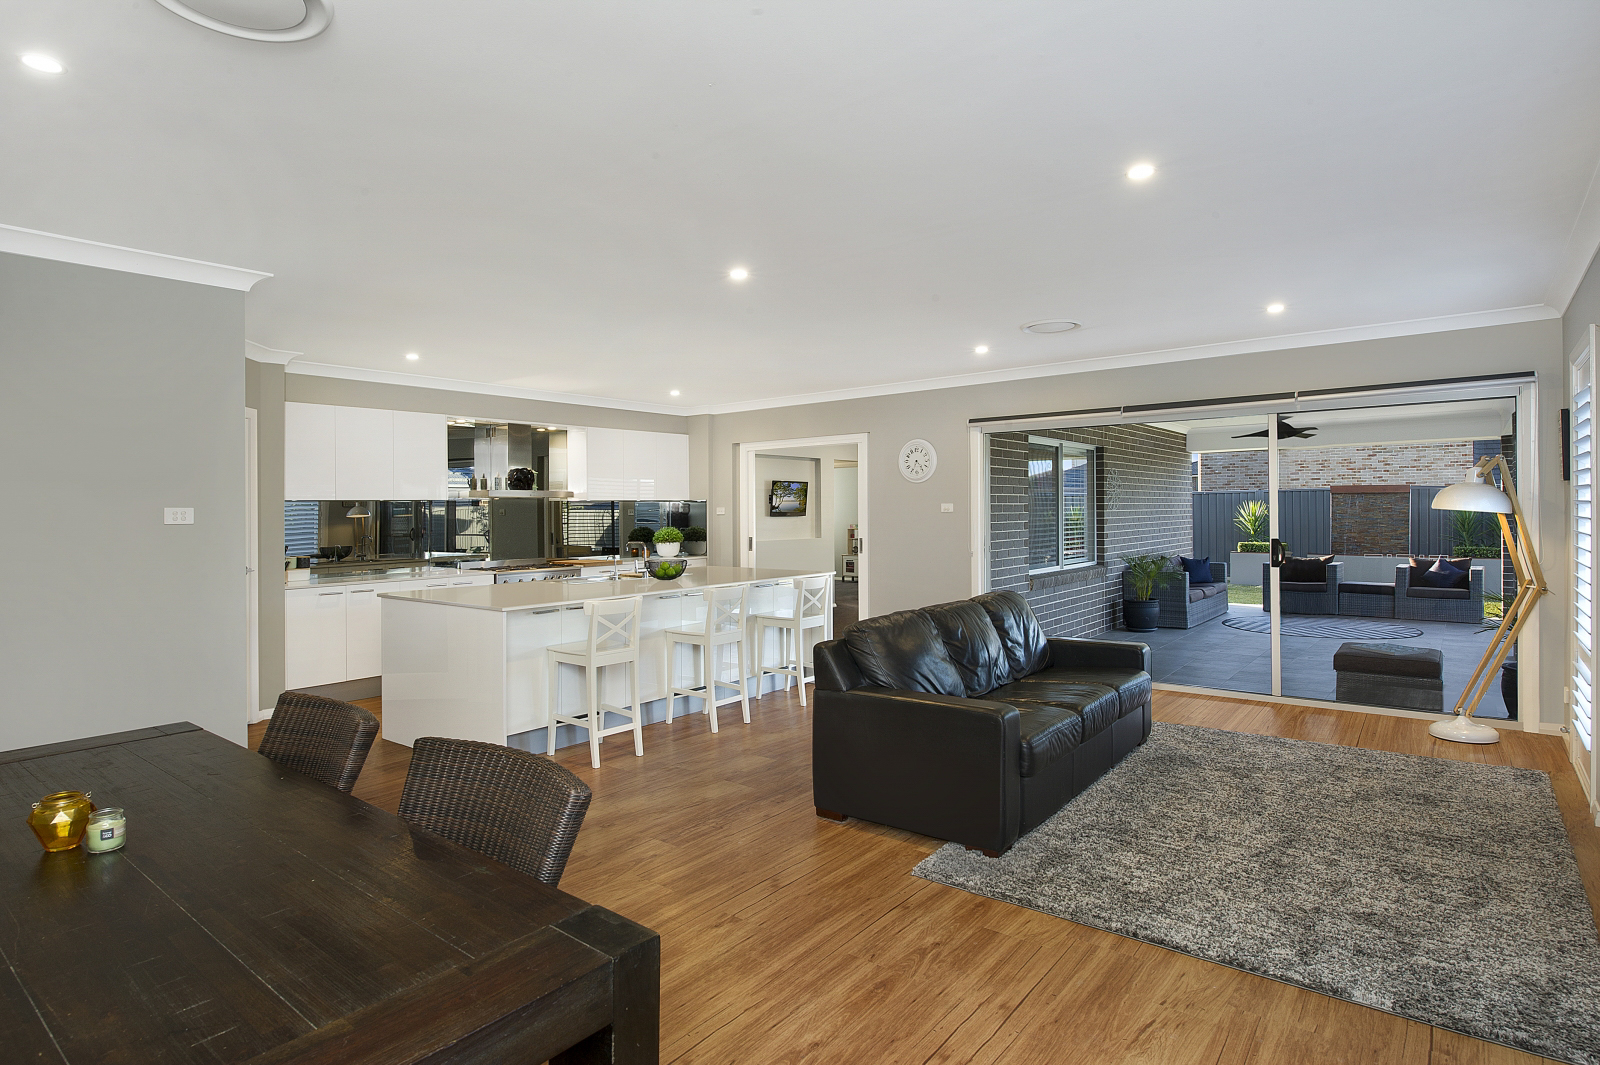 Kiama Shellharbour Gerringong Berry Wollongong South Coast Illawarra Commercial Photographer, architectural photographer, real estate photographer - living room